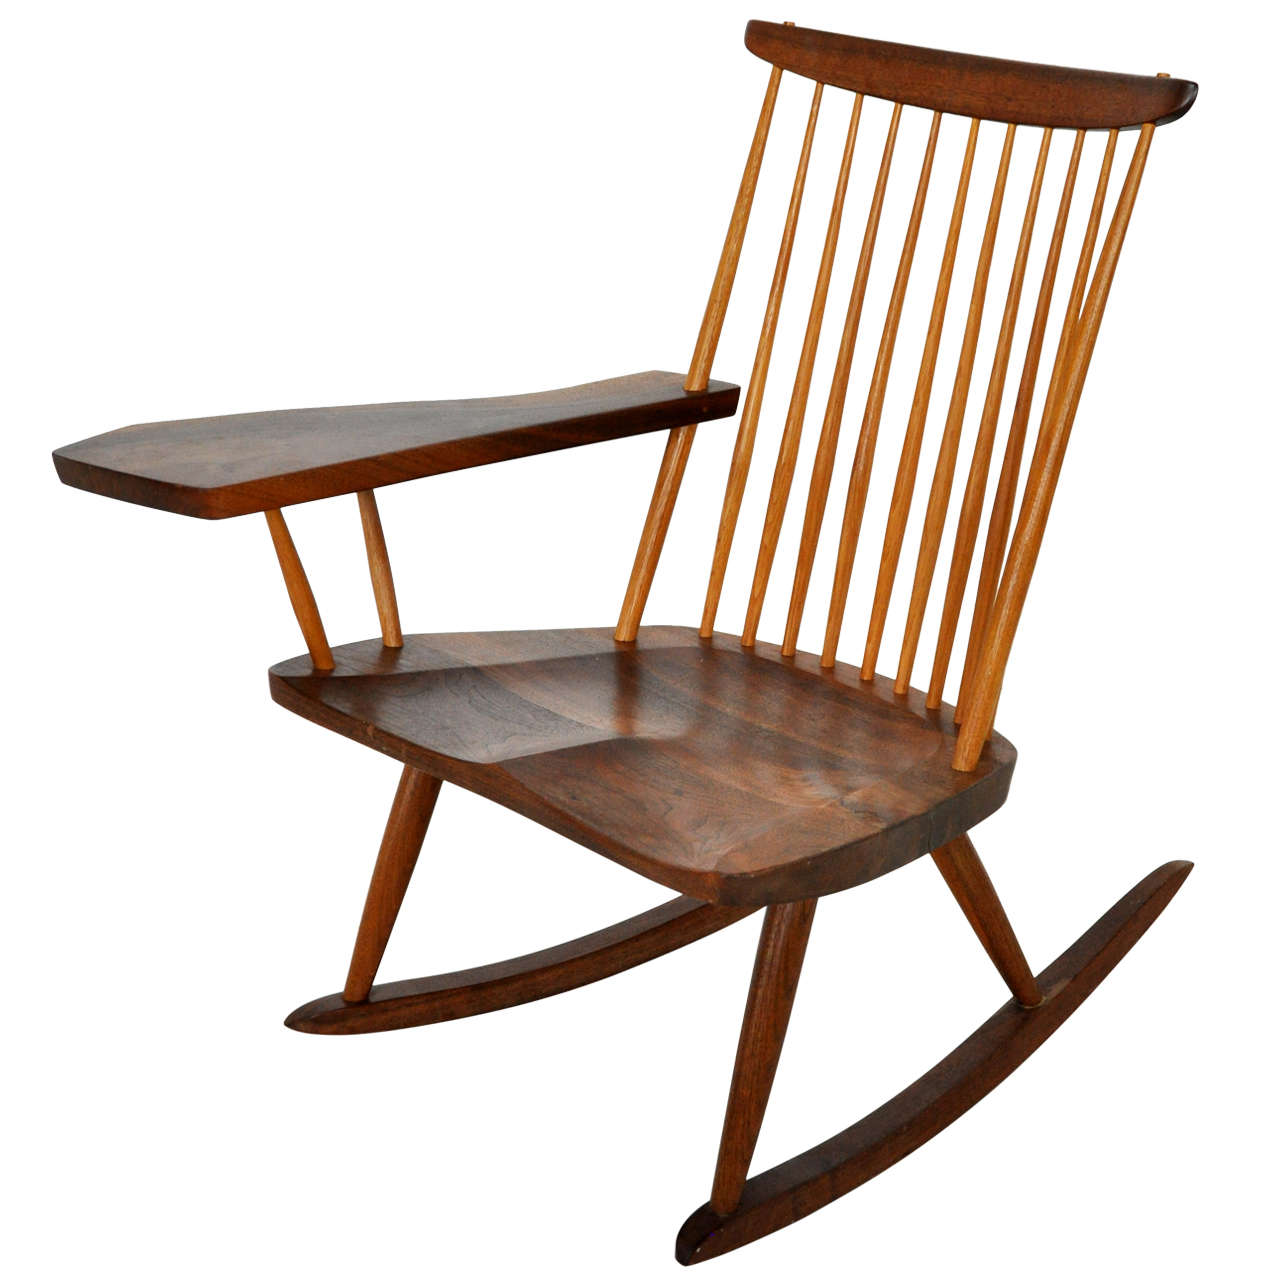 Antique rocking chair - Wonderful Image Of Home Furniture Seating Rocking Chairs With Af5109 Color And